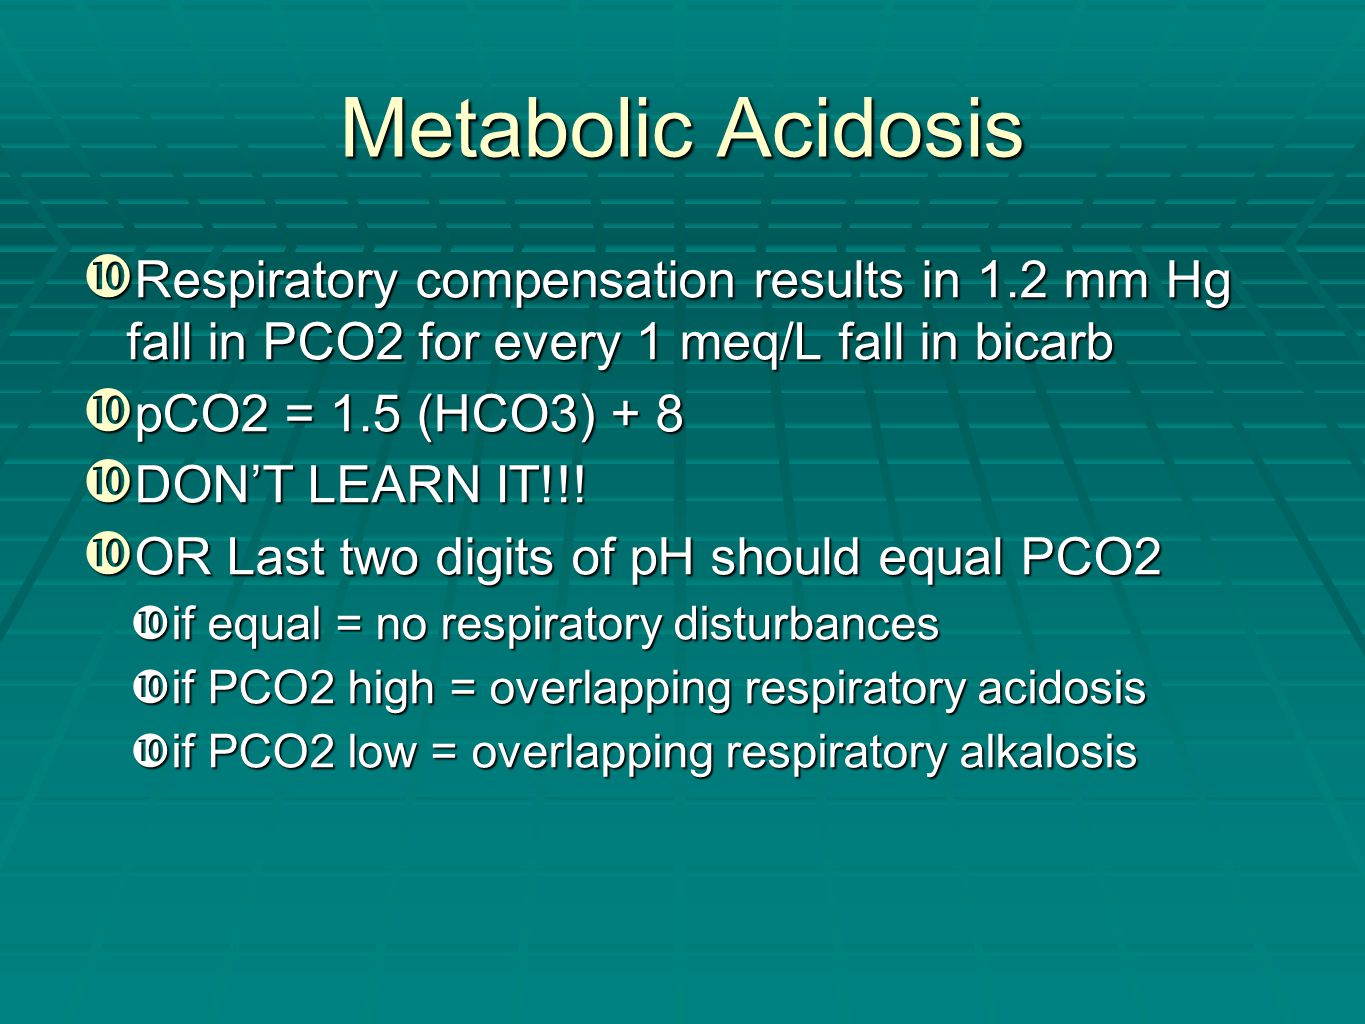 Metabolic Acidosis Respiratory compensation results in 1.2 mm Hg fall in PCO2 for every 1 meq/L fall in bicarb.